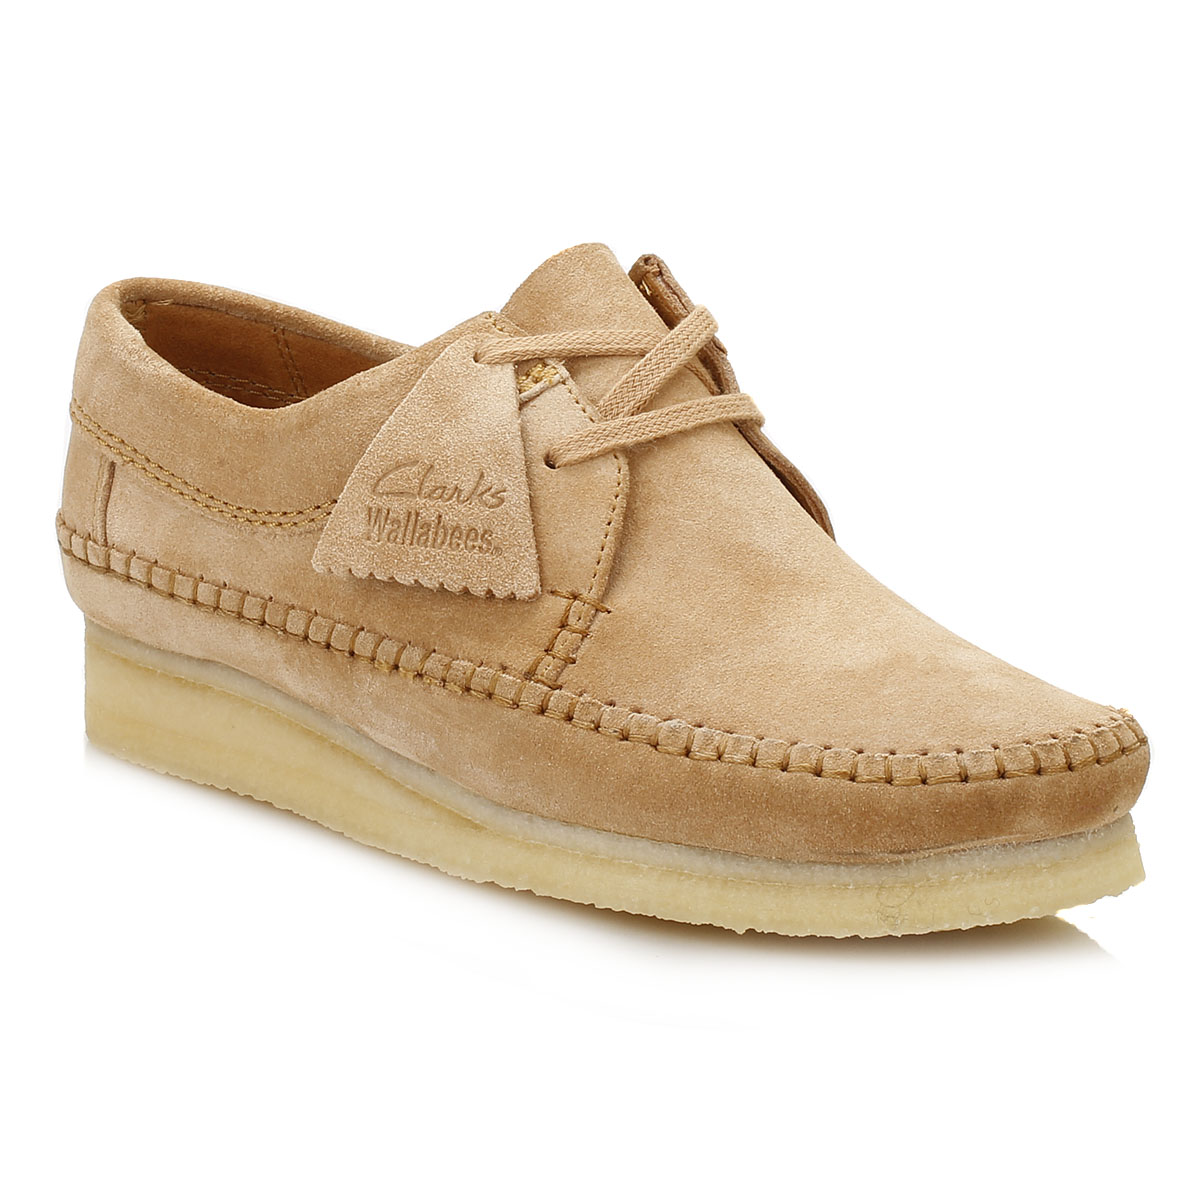 Womens Clarks Shoes In Blue